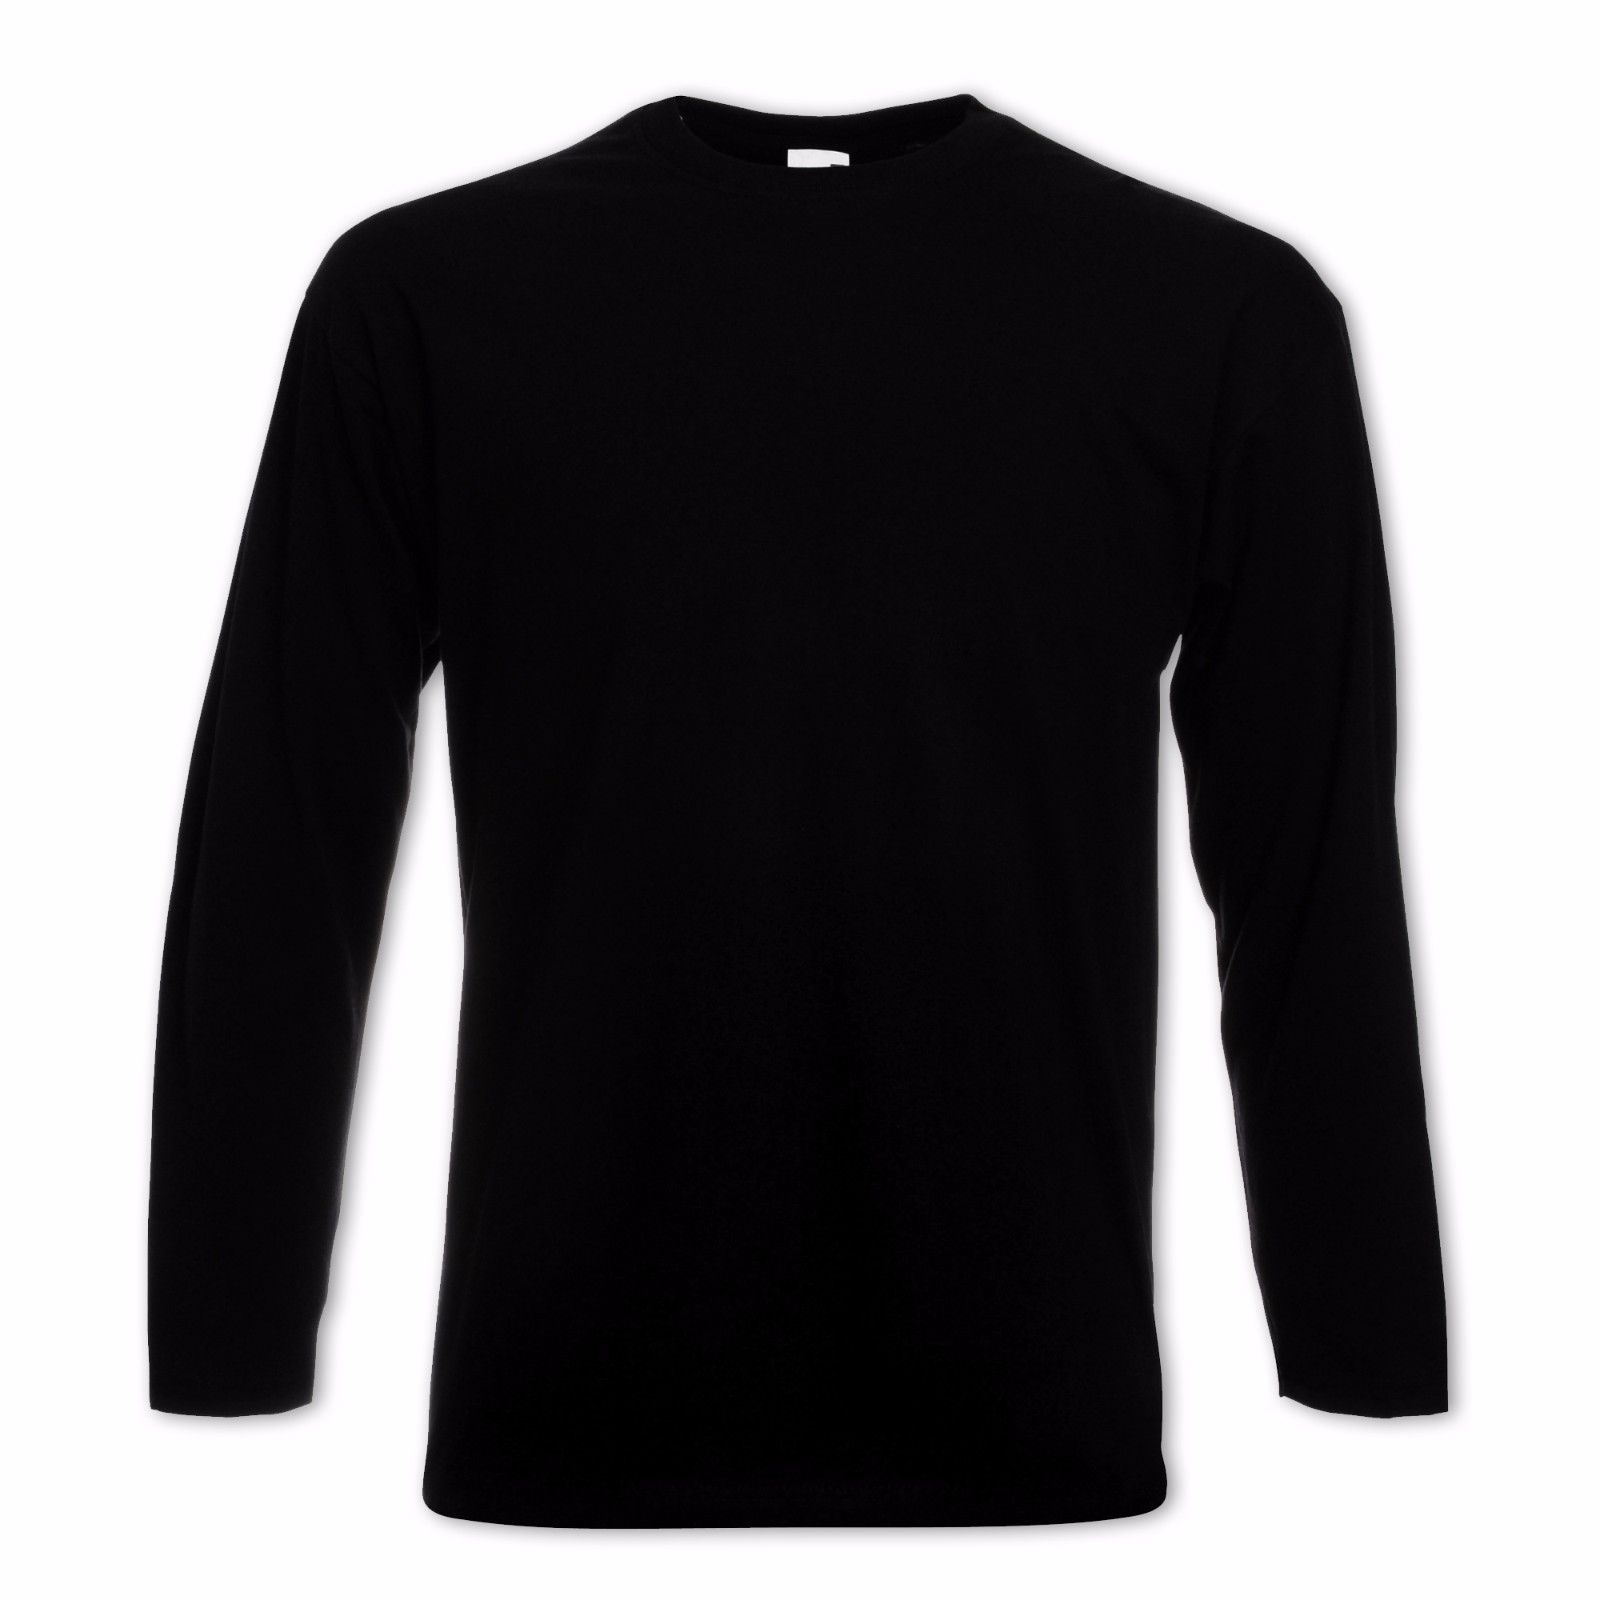 5er-Set-Fruit-of-the-loom-Herren-Longsleeve-T-Shirts-S-M-L-XL-XXL-Langarm-Shirt